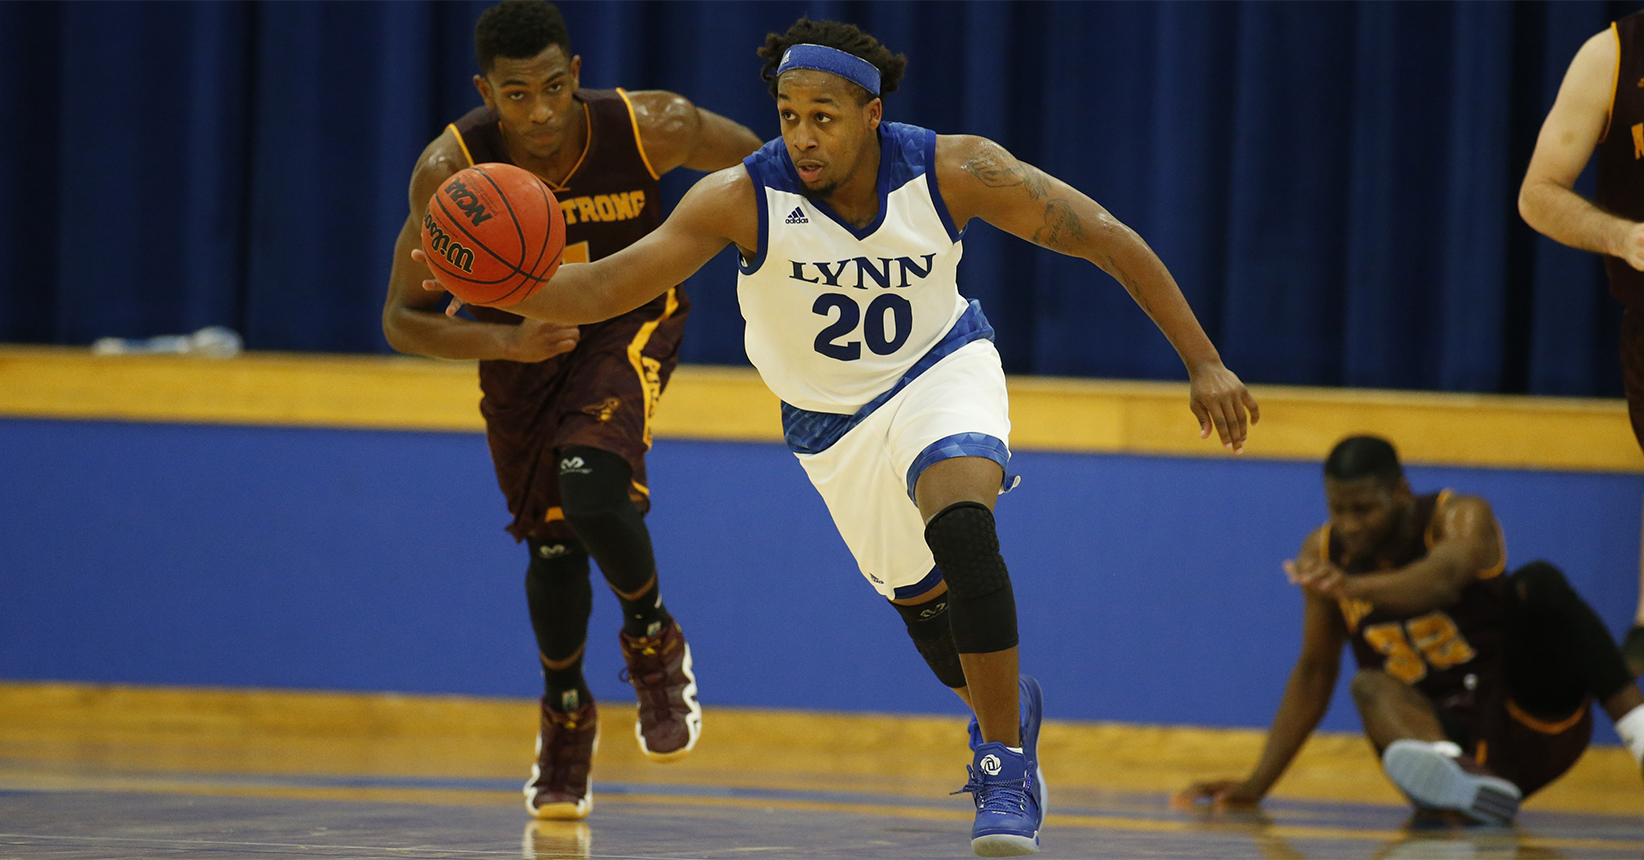 Men's Basketball Earns SSC Tournament Berth with 74-55 Win over Tampa